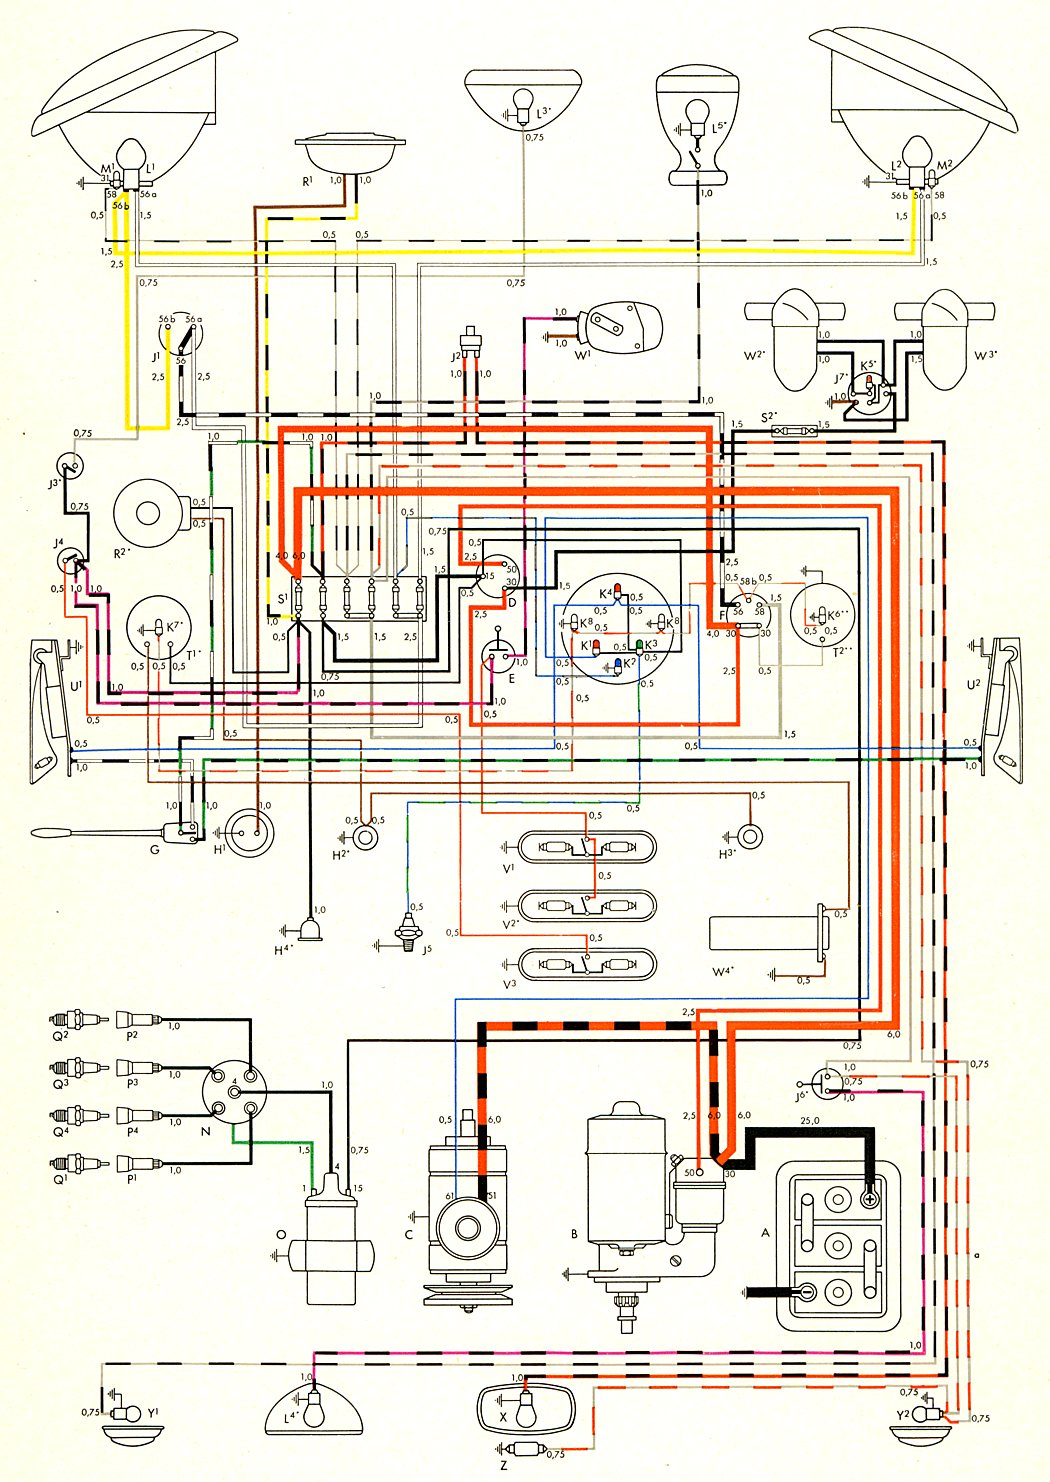 hight resolution of buick verano electrical wiring diagram autos post 84 chevrolet k5 wirring gmc seats parts